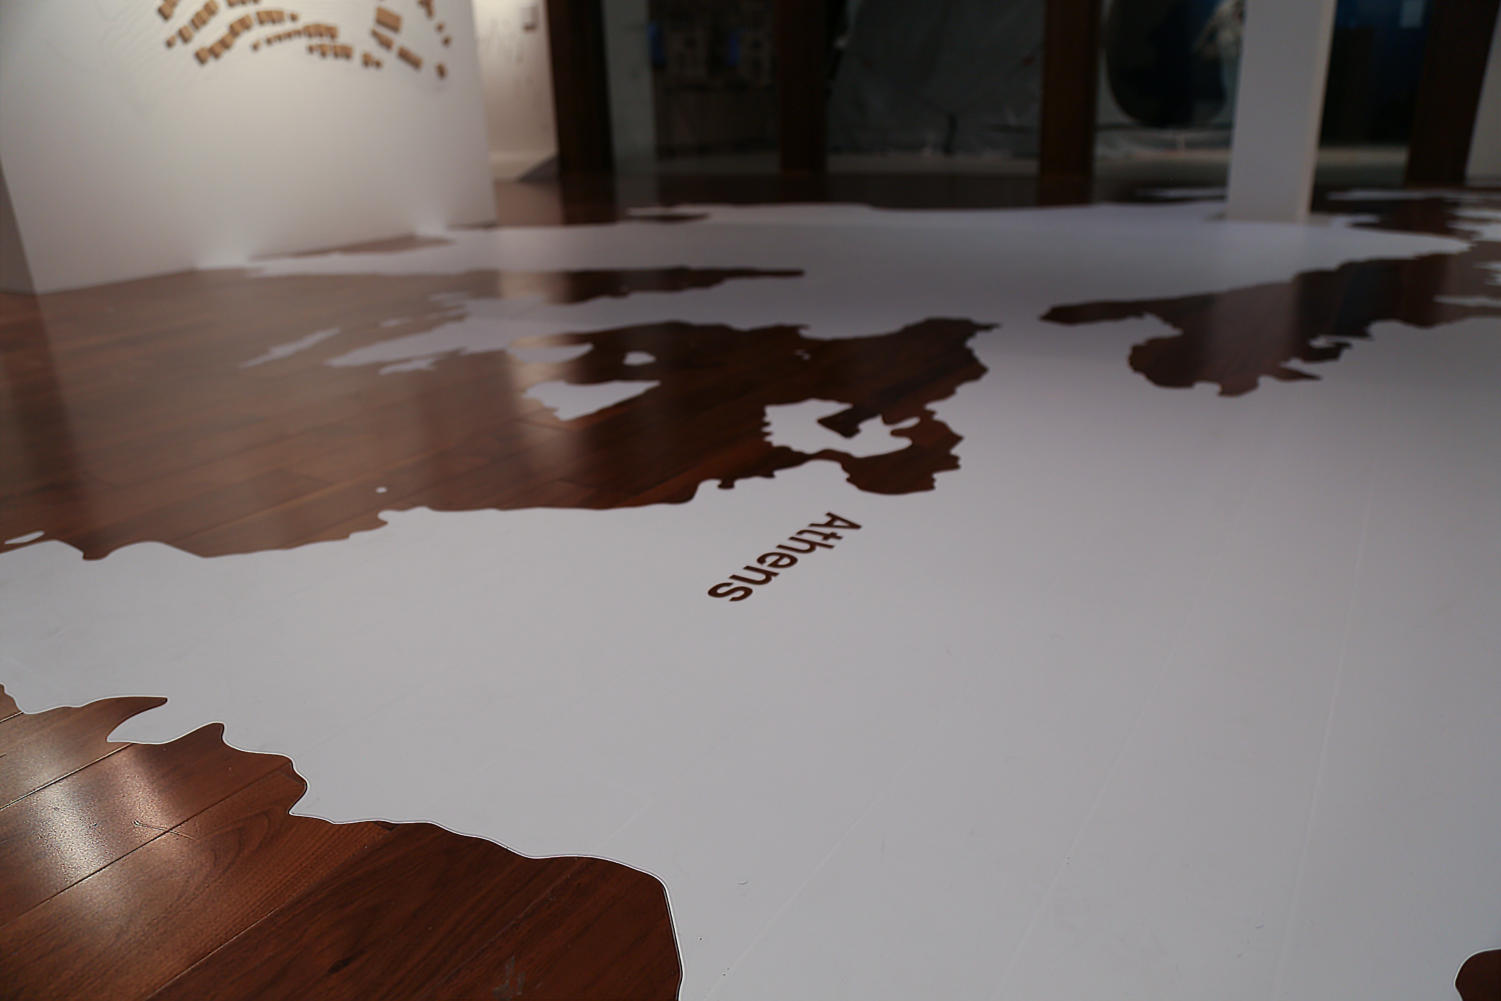 A+map+of+Greece+has+been+painted+on+the+wooden+floor+of+the+exhibition+to+help+visitors+experience+the+heart+of+the+camp.+%0A